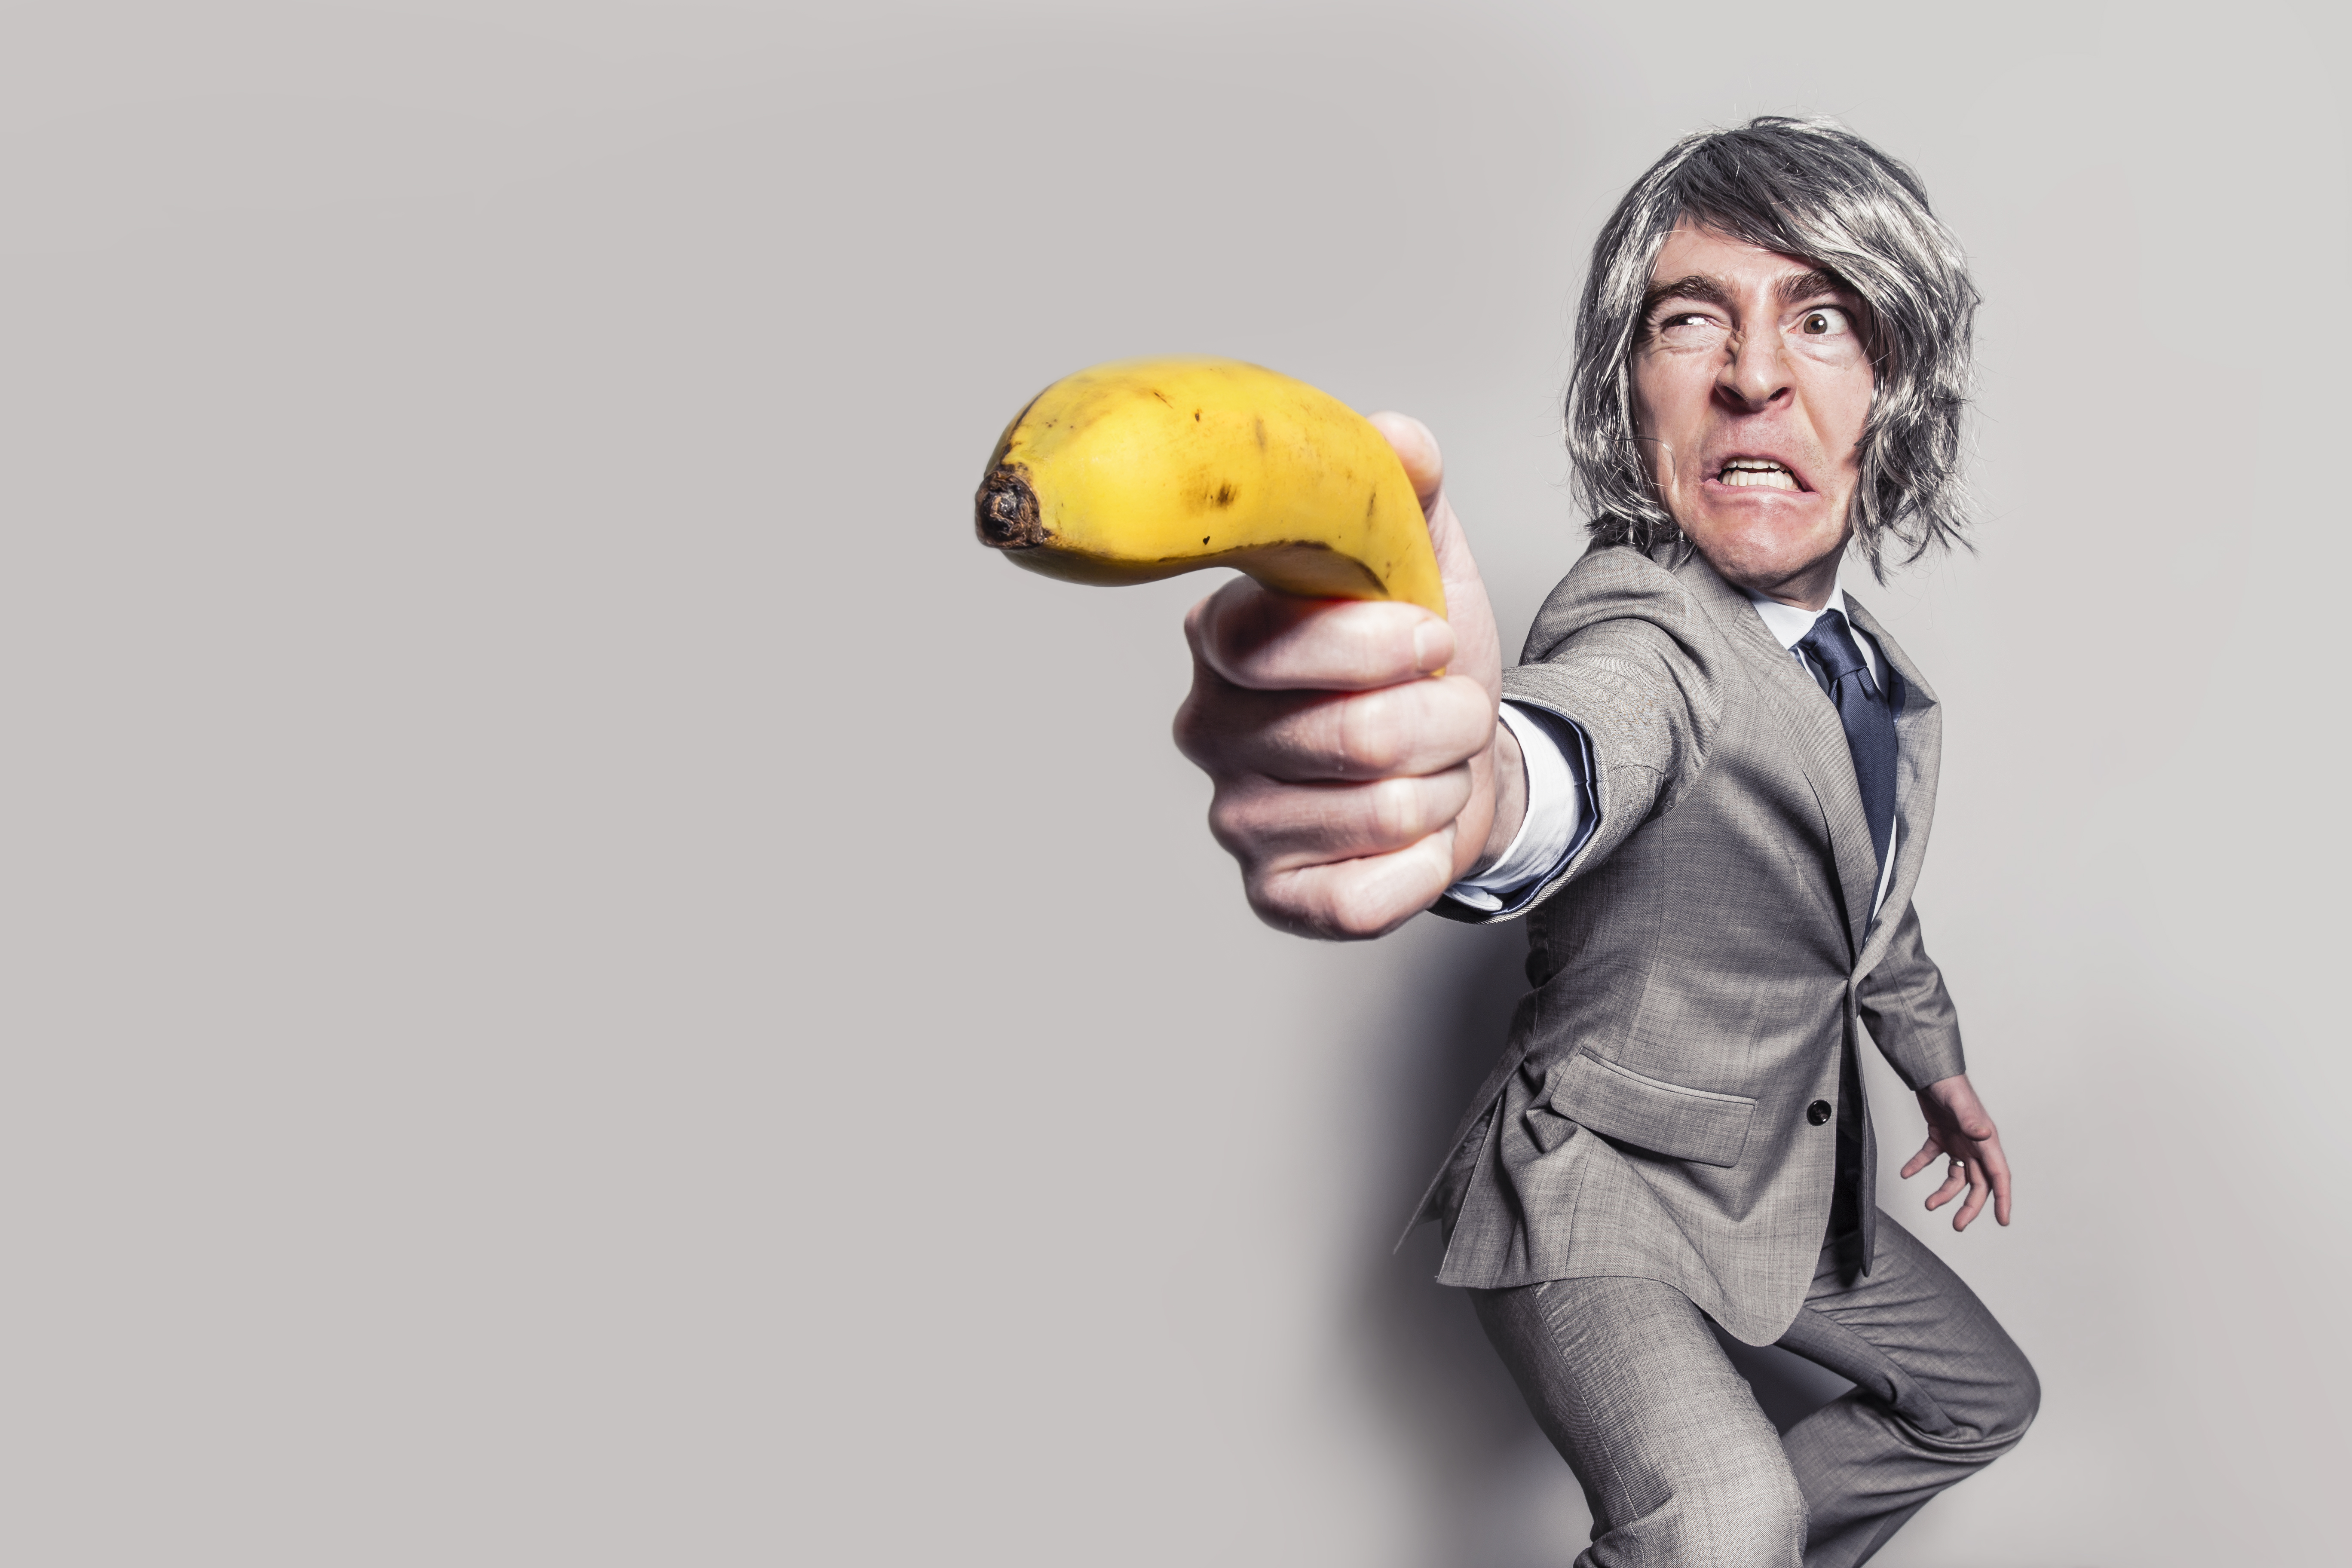 emotion-funny-man-banana-gun-free-high-definition-pictures-download-quality-long-hair-spy-wallpaper-wp3405229